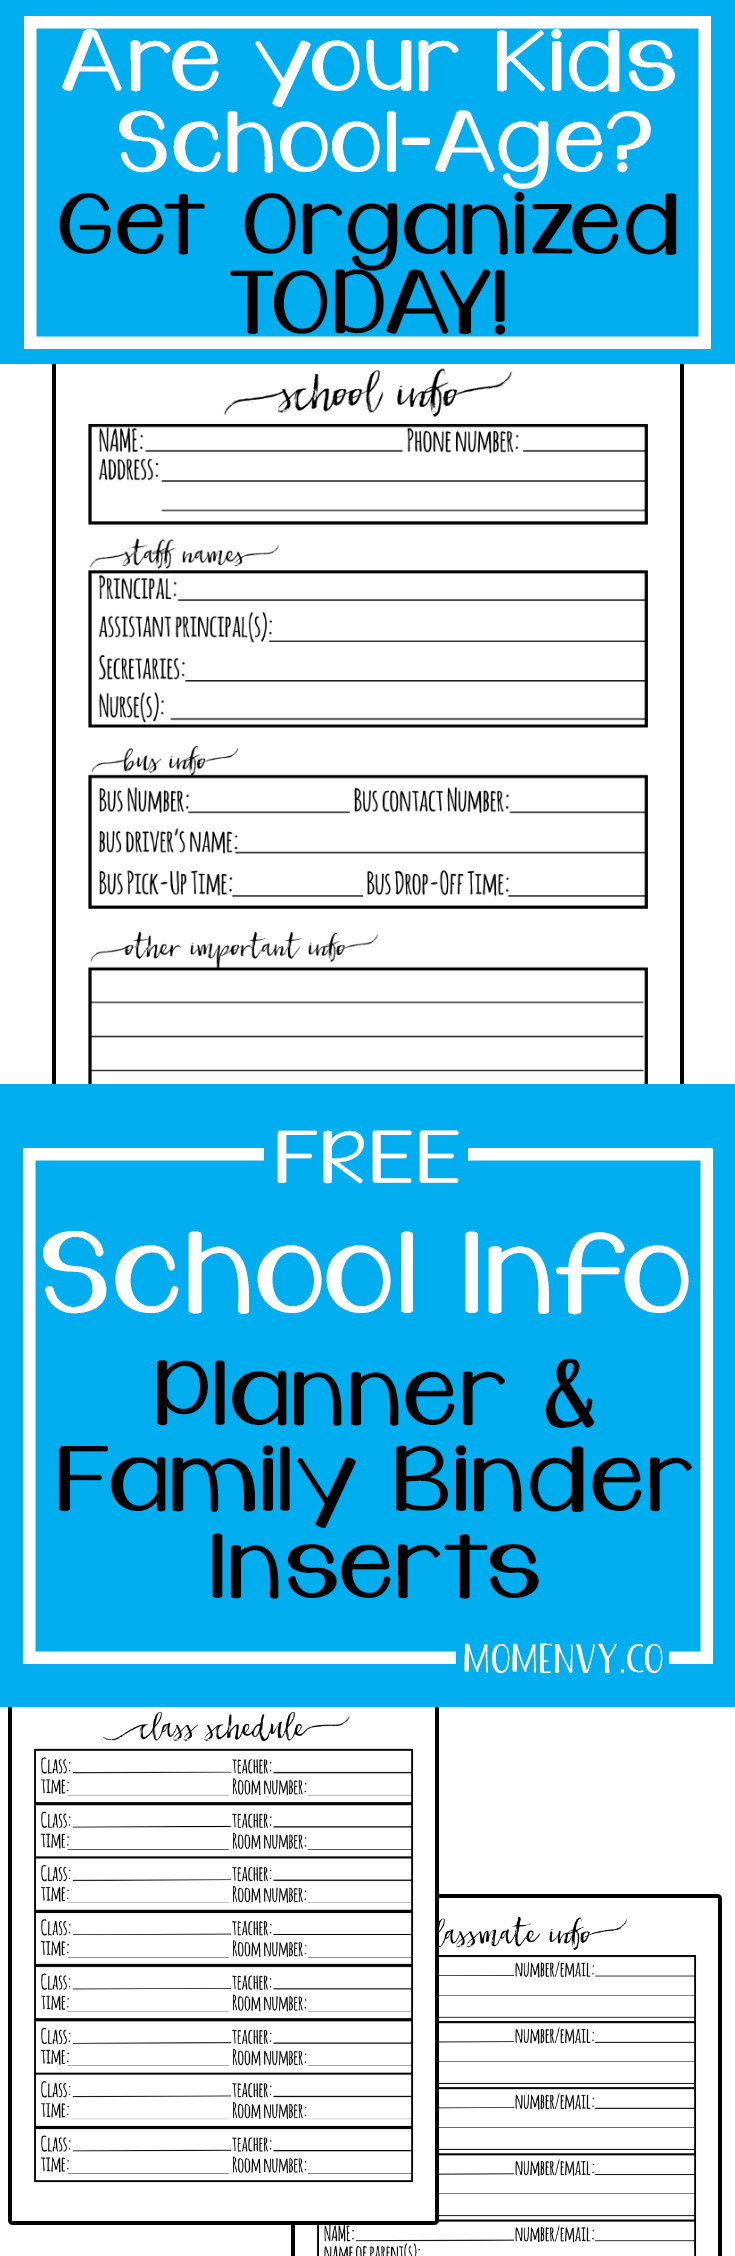 image about Printable Binder Inserts identify Faculty Planner Inserts - No cost Planner and Spouse and children Binder